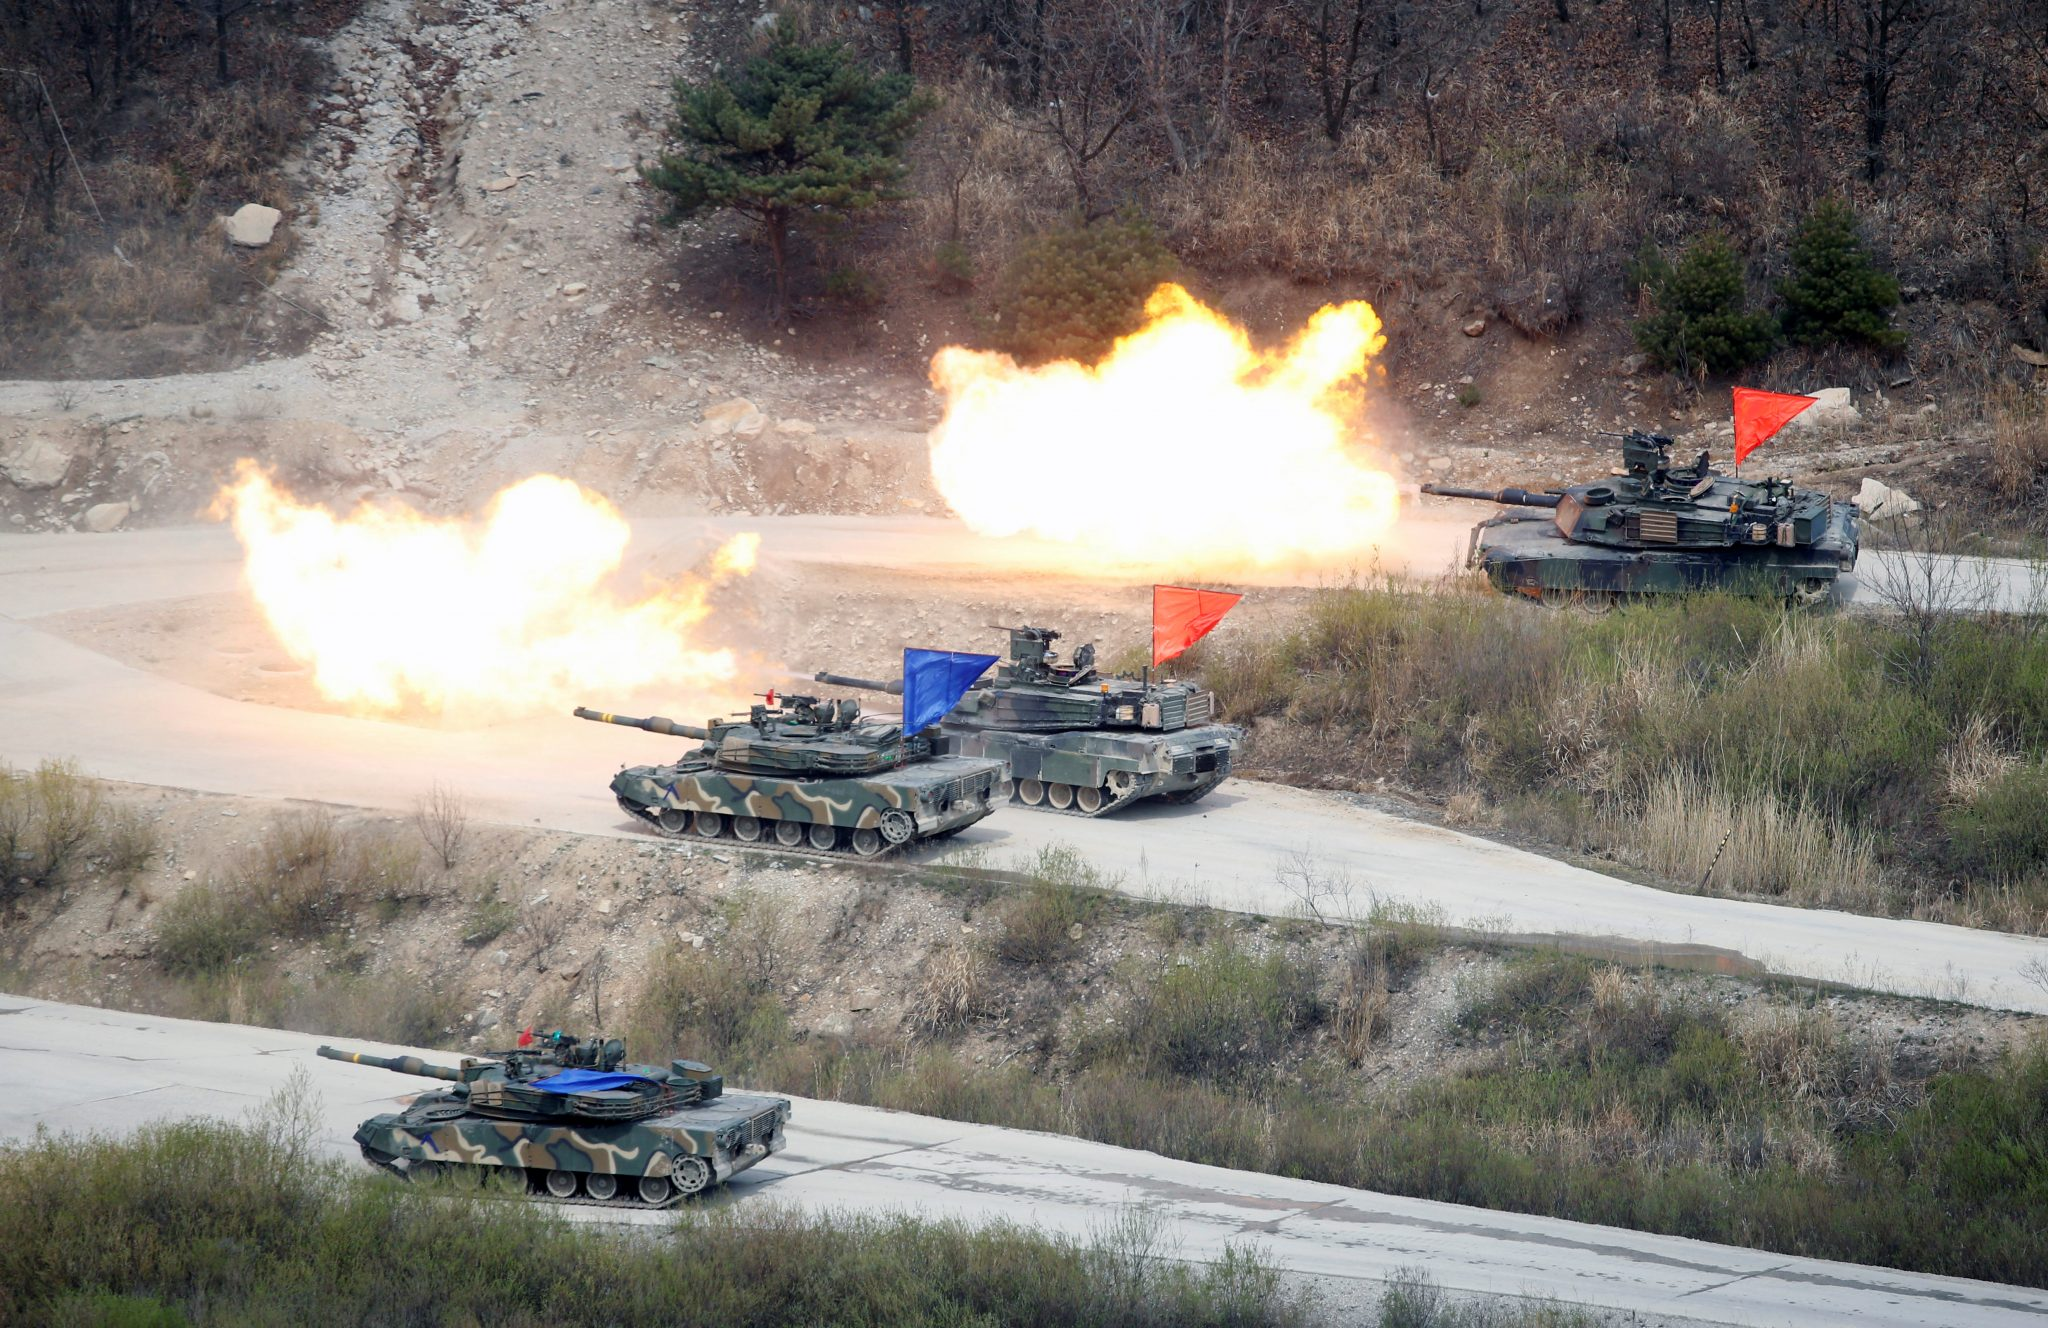 US- South Korea joint military exercise. South Korean Army K1A1 and U.S. Army M1A2 tanks fire live rounds during a U.S.-South Korea joint live-fire military exercise, at a training field, near the demilitarized zone, separating the two Koreas in Pocheon, South Korea April 21, 2017. | REUTERS |